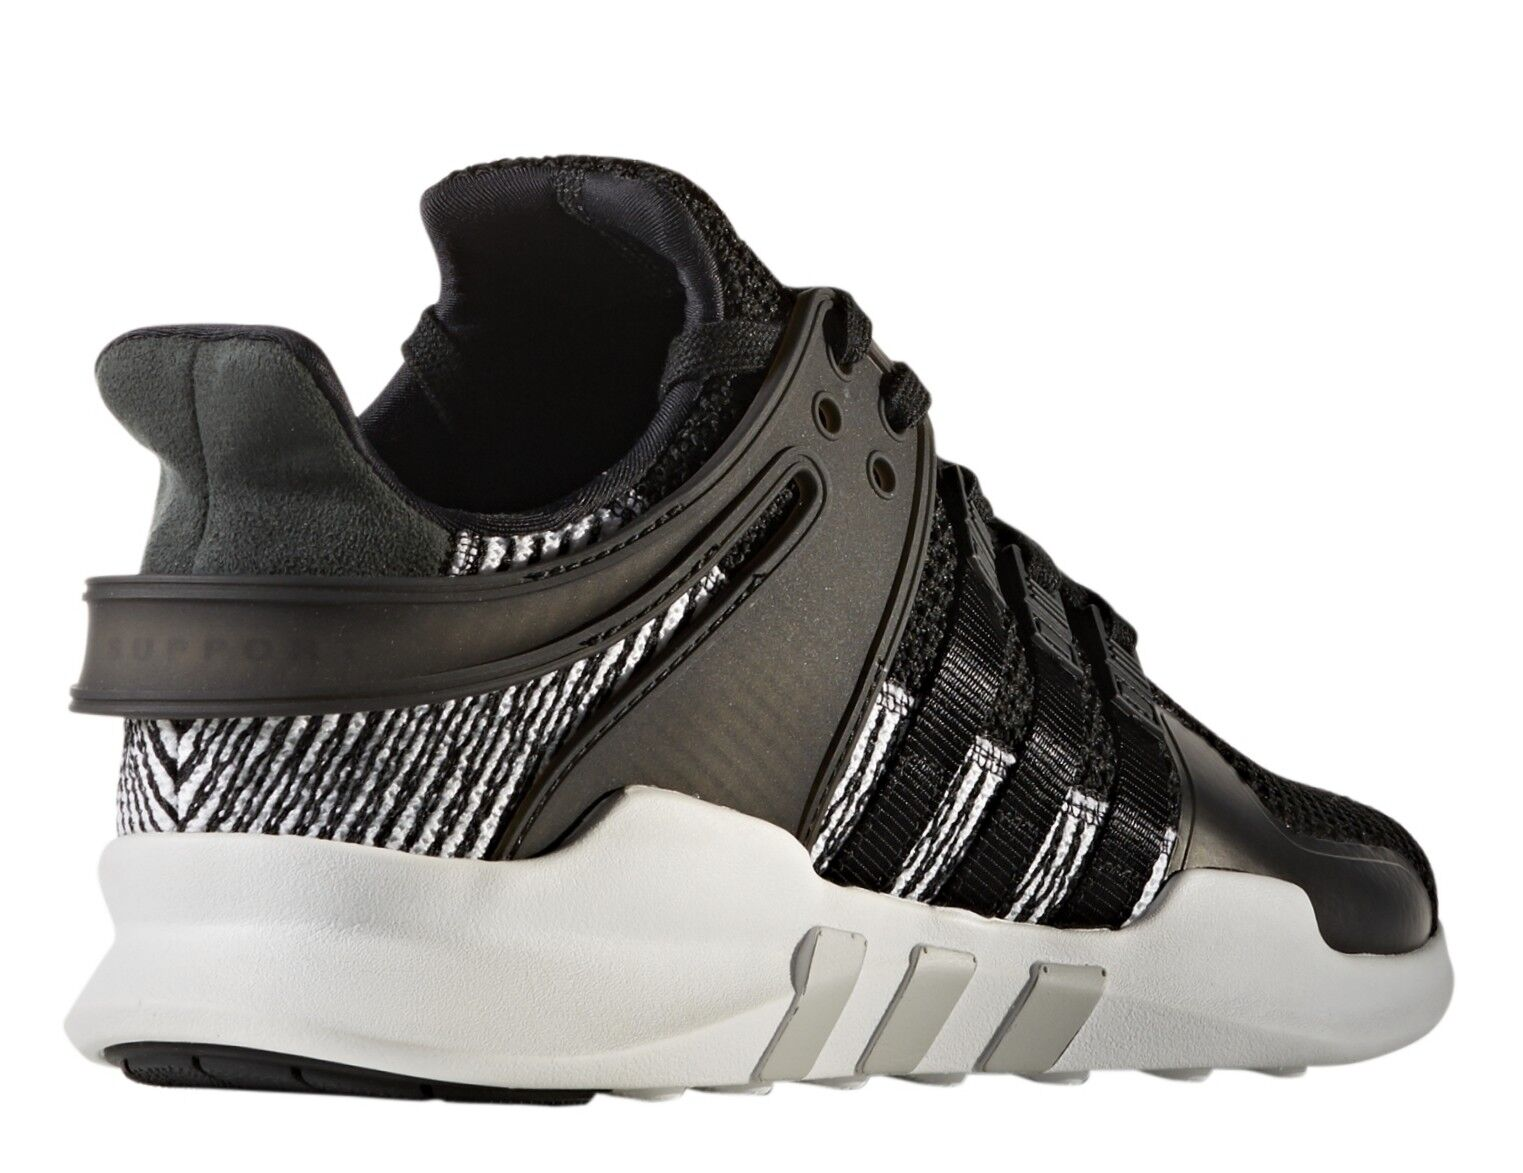 adidas EQT Support ADV Schuh Turnschuhe BY9585 black Sneakers RF new Stoffschuh